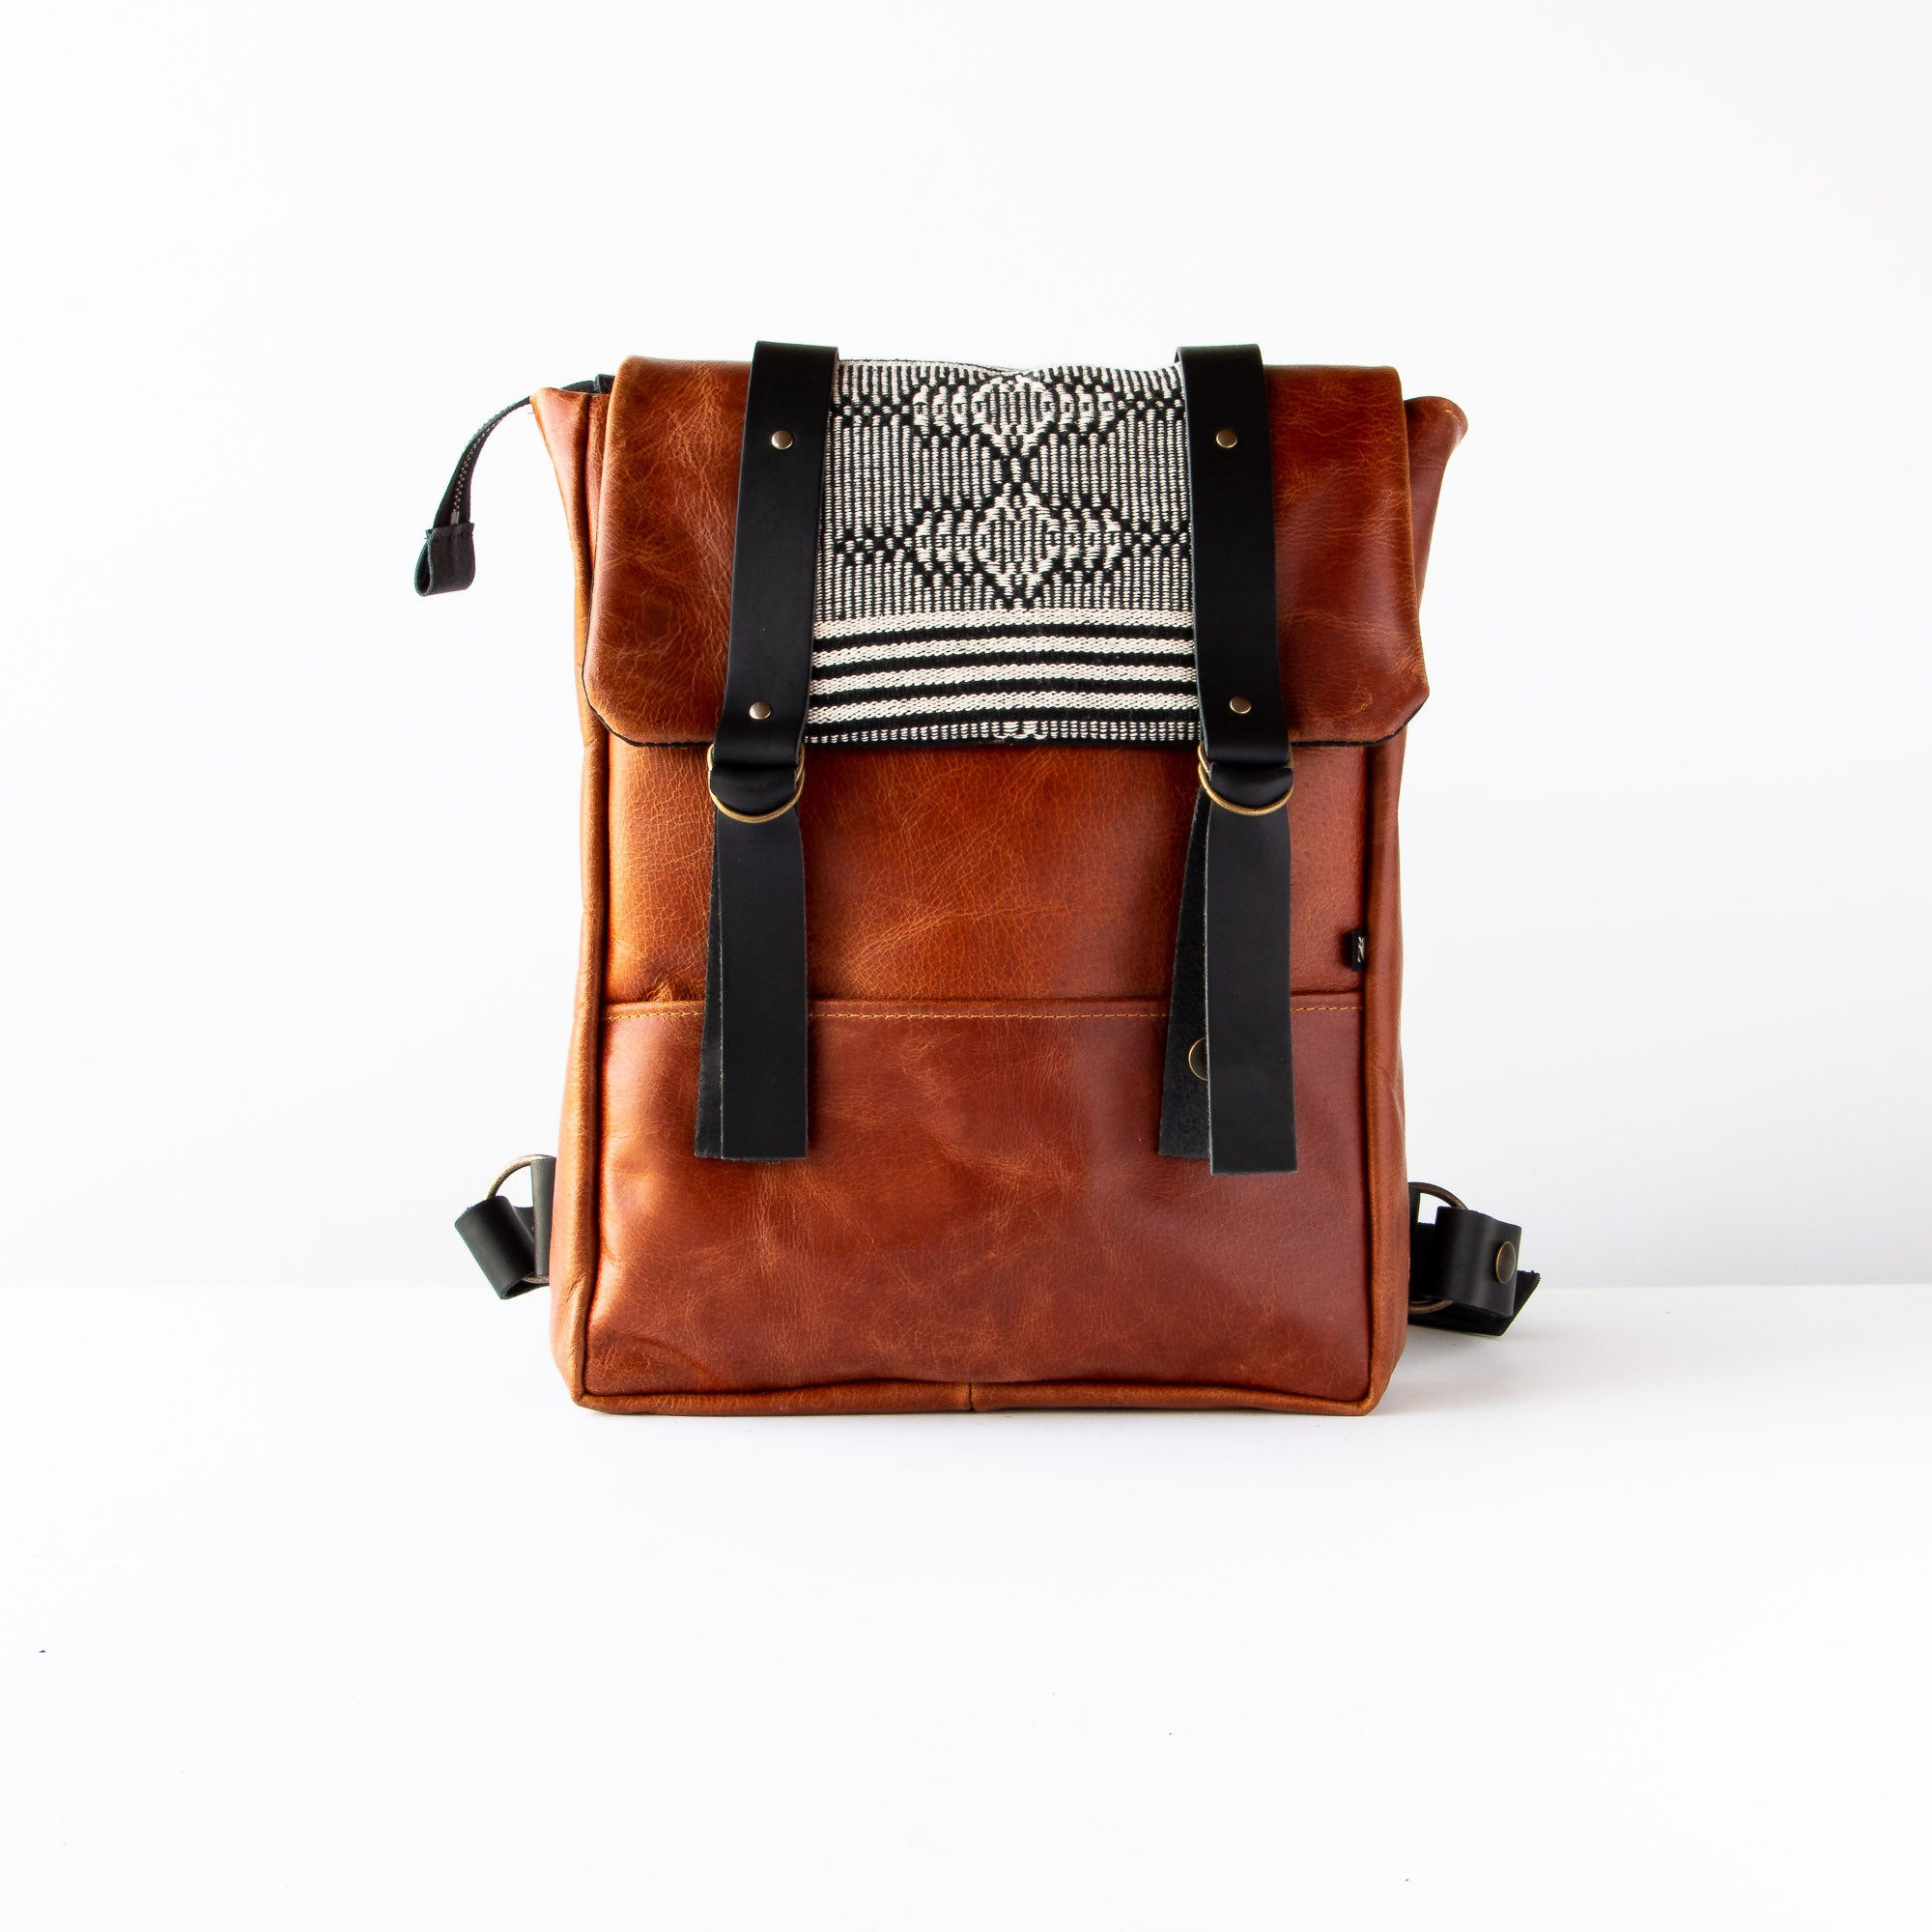 Cairo - Columbia - Backpack in Recycled & Vegetable Tanned Leather & Fabric - Sold by Chic & Basta